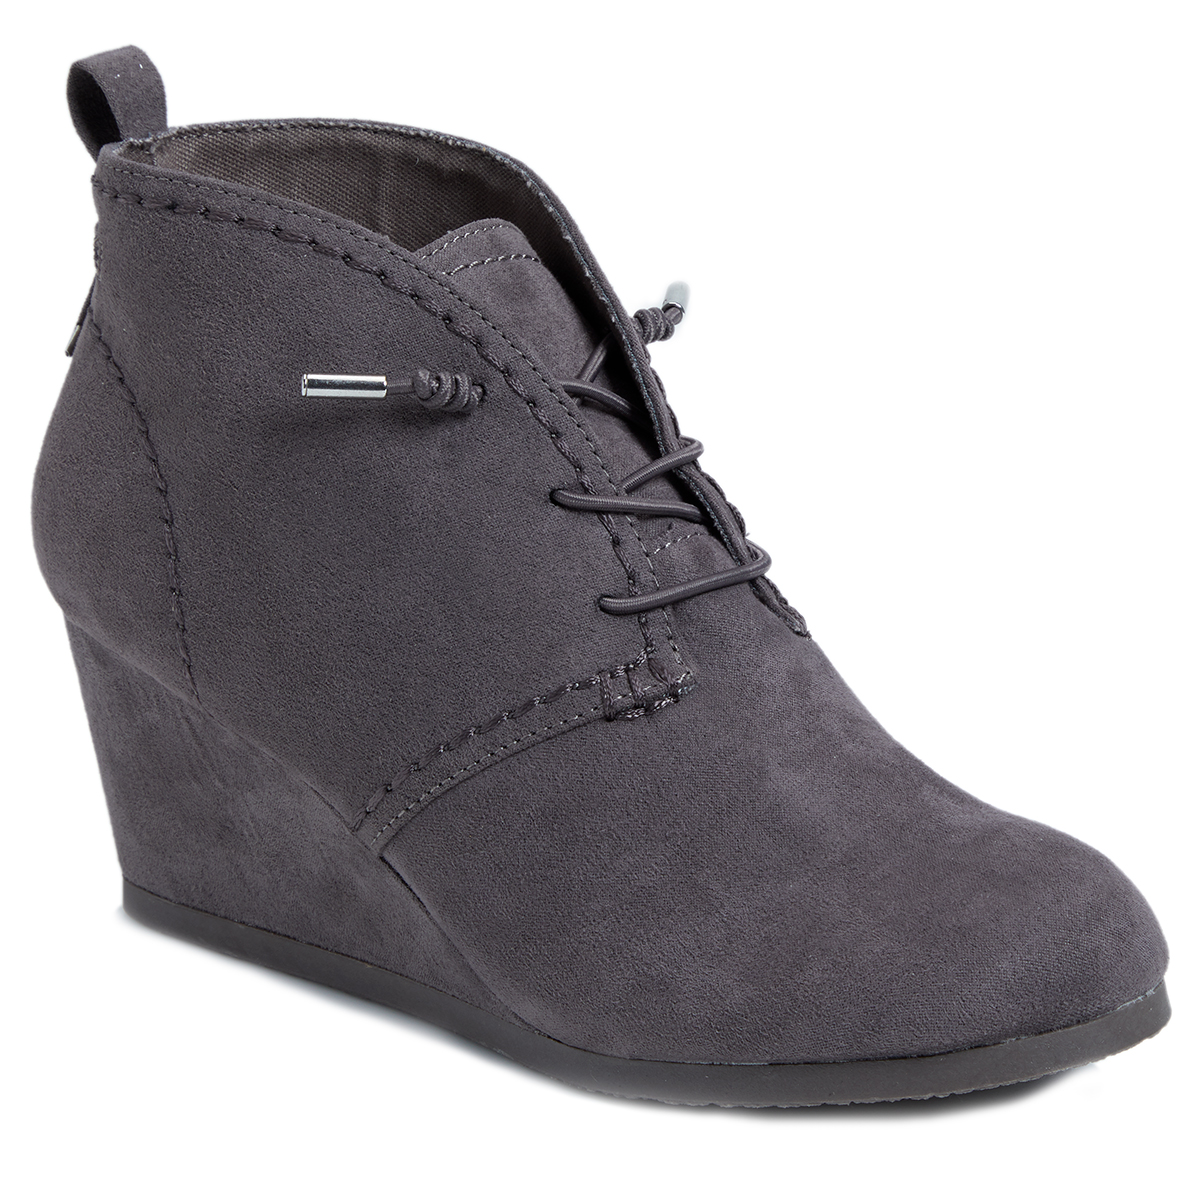 Rampage Women's Maybee Wedge Bootie - Black, 8.5